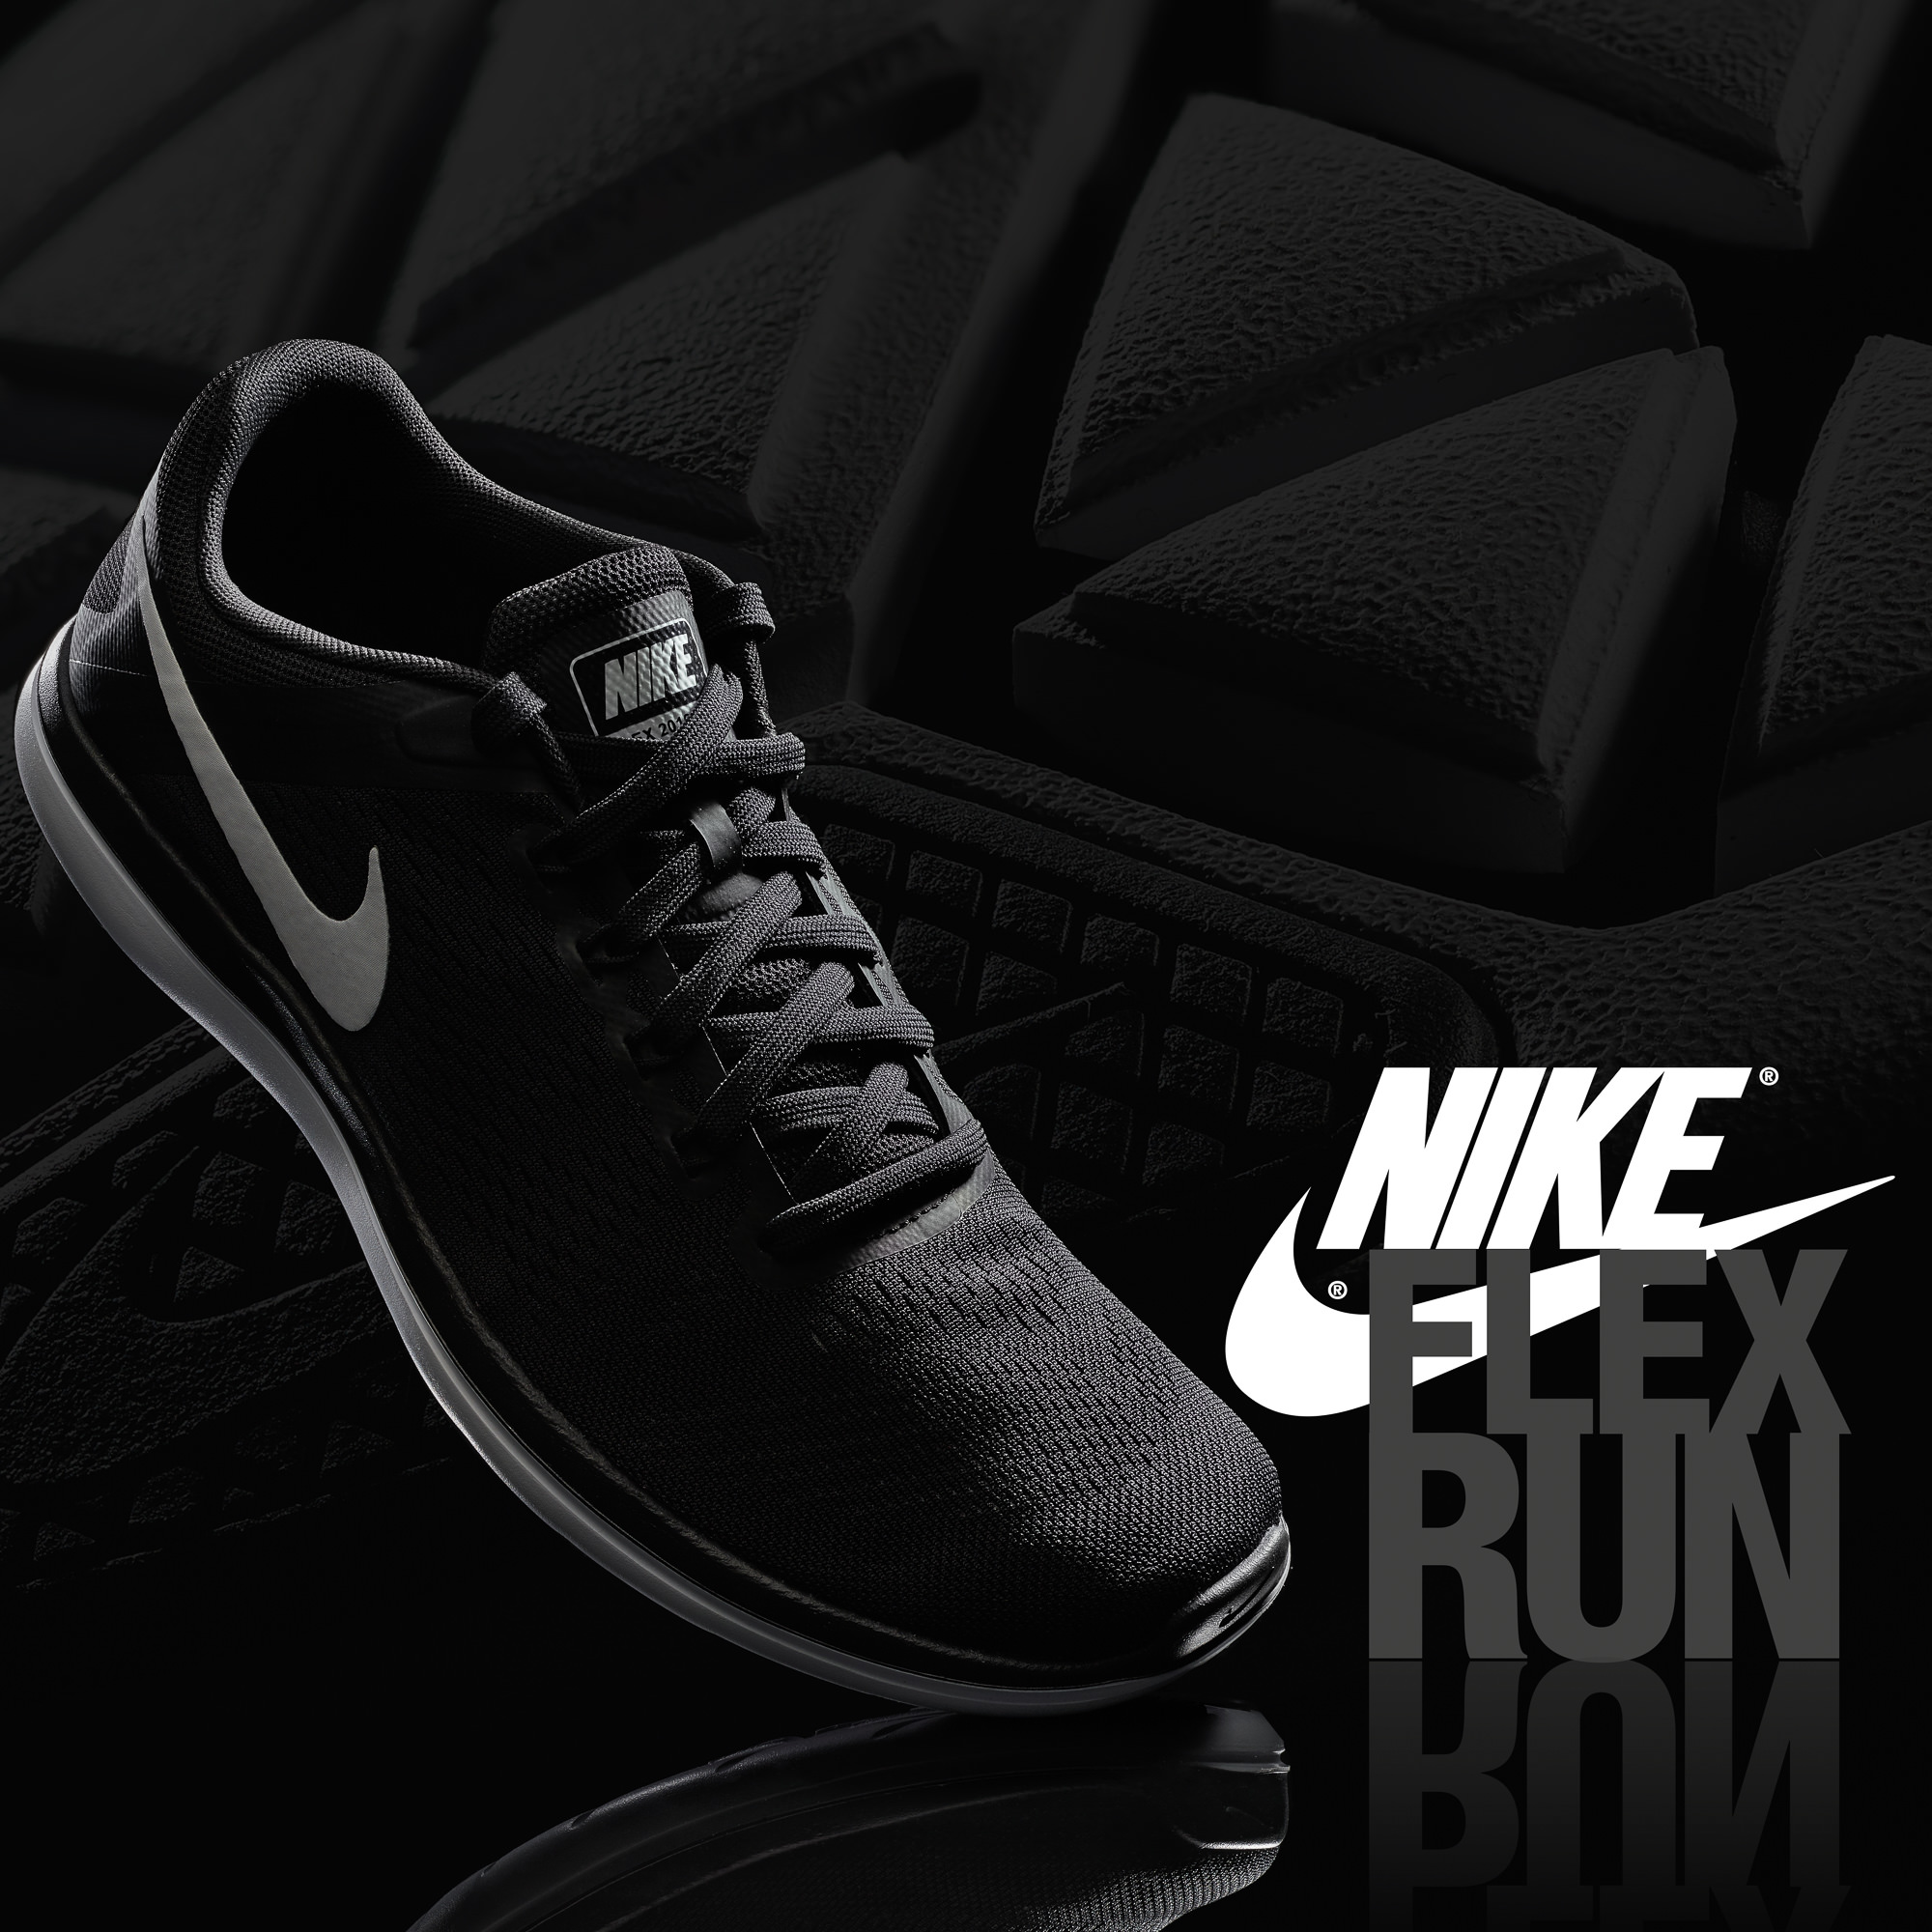 Nike shoe product photographer